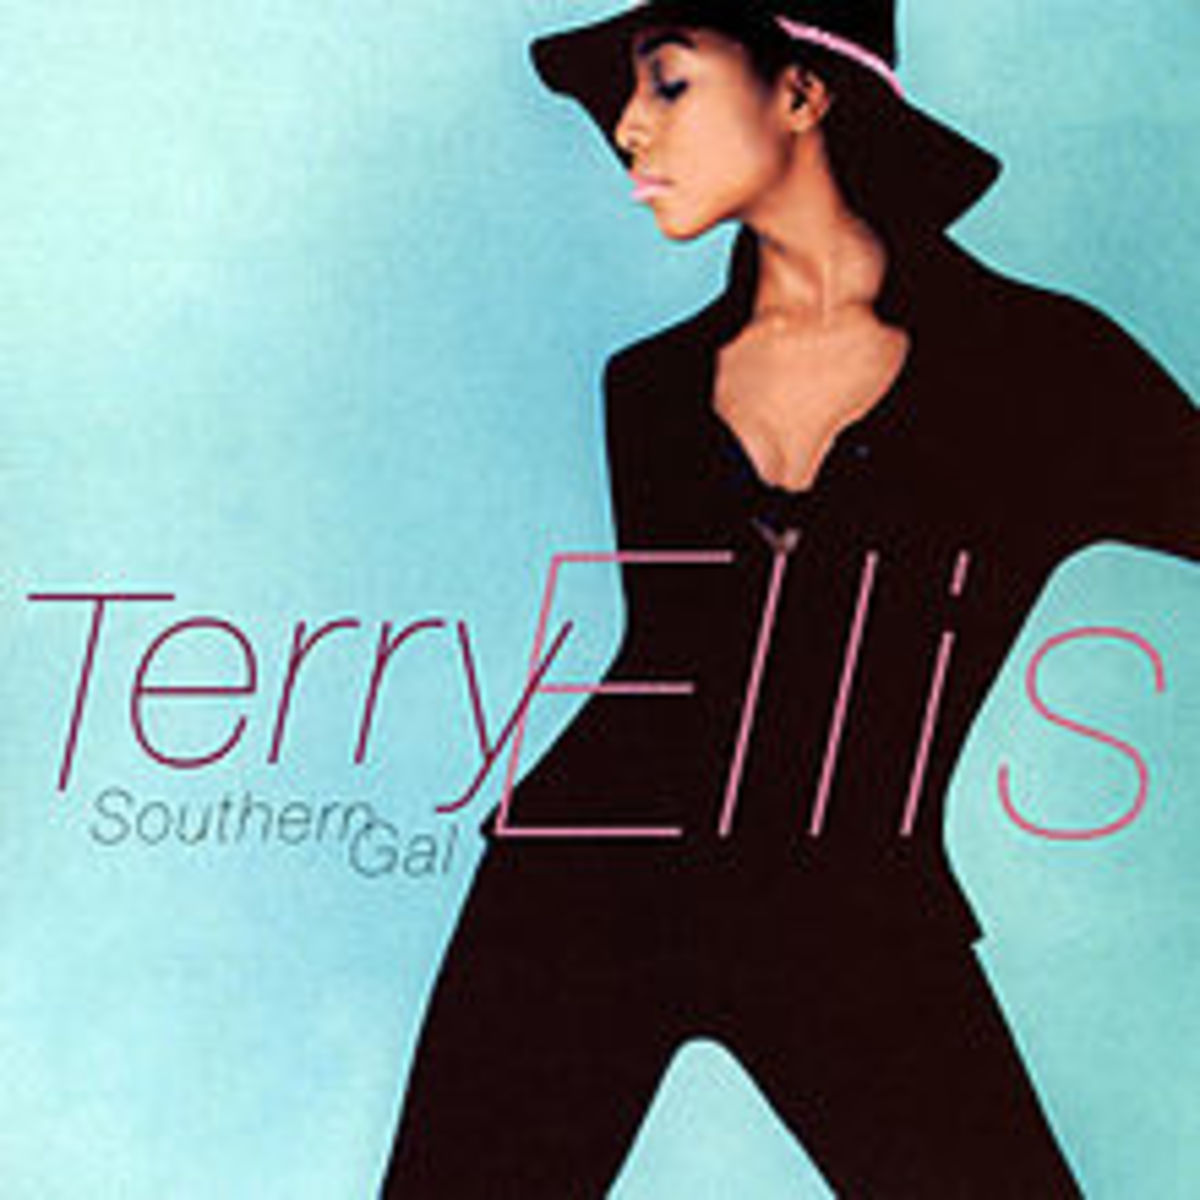 Terry Ellis was the 1st member of En Vogue to record a solo album.  It lacked the mainstream and commercial success of En Vogue.